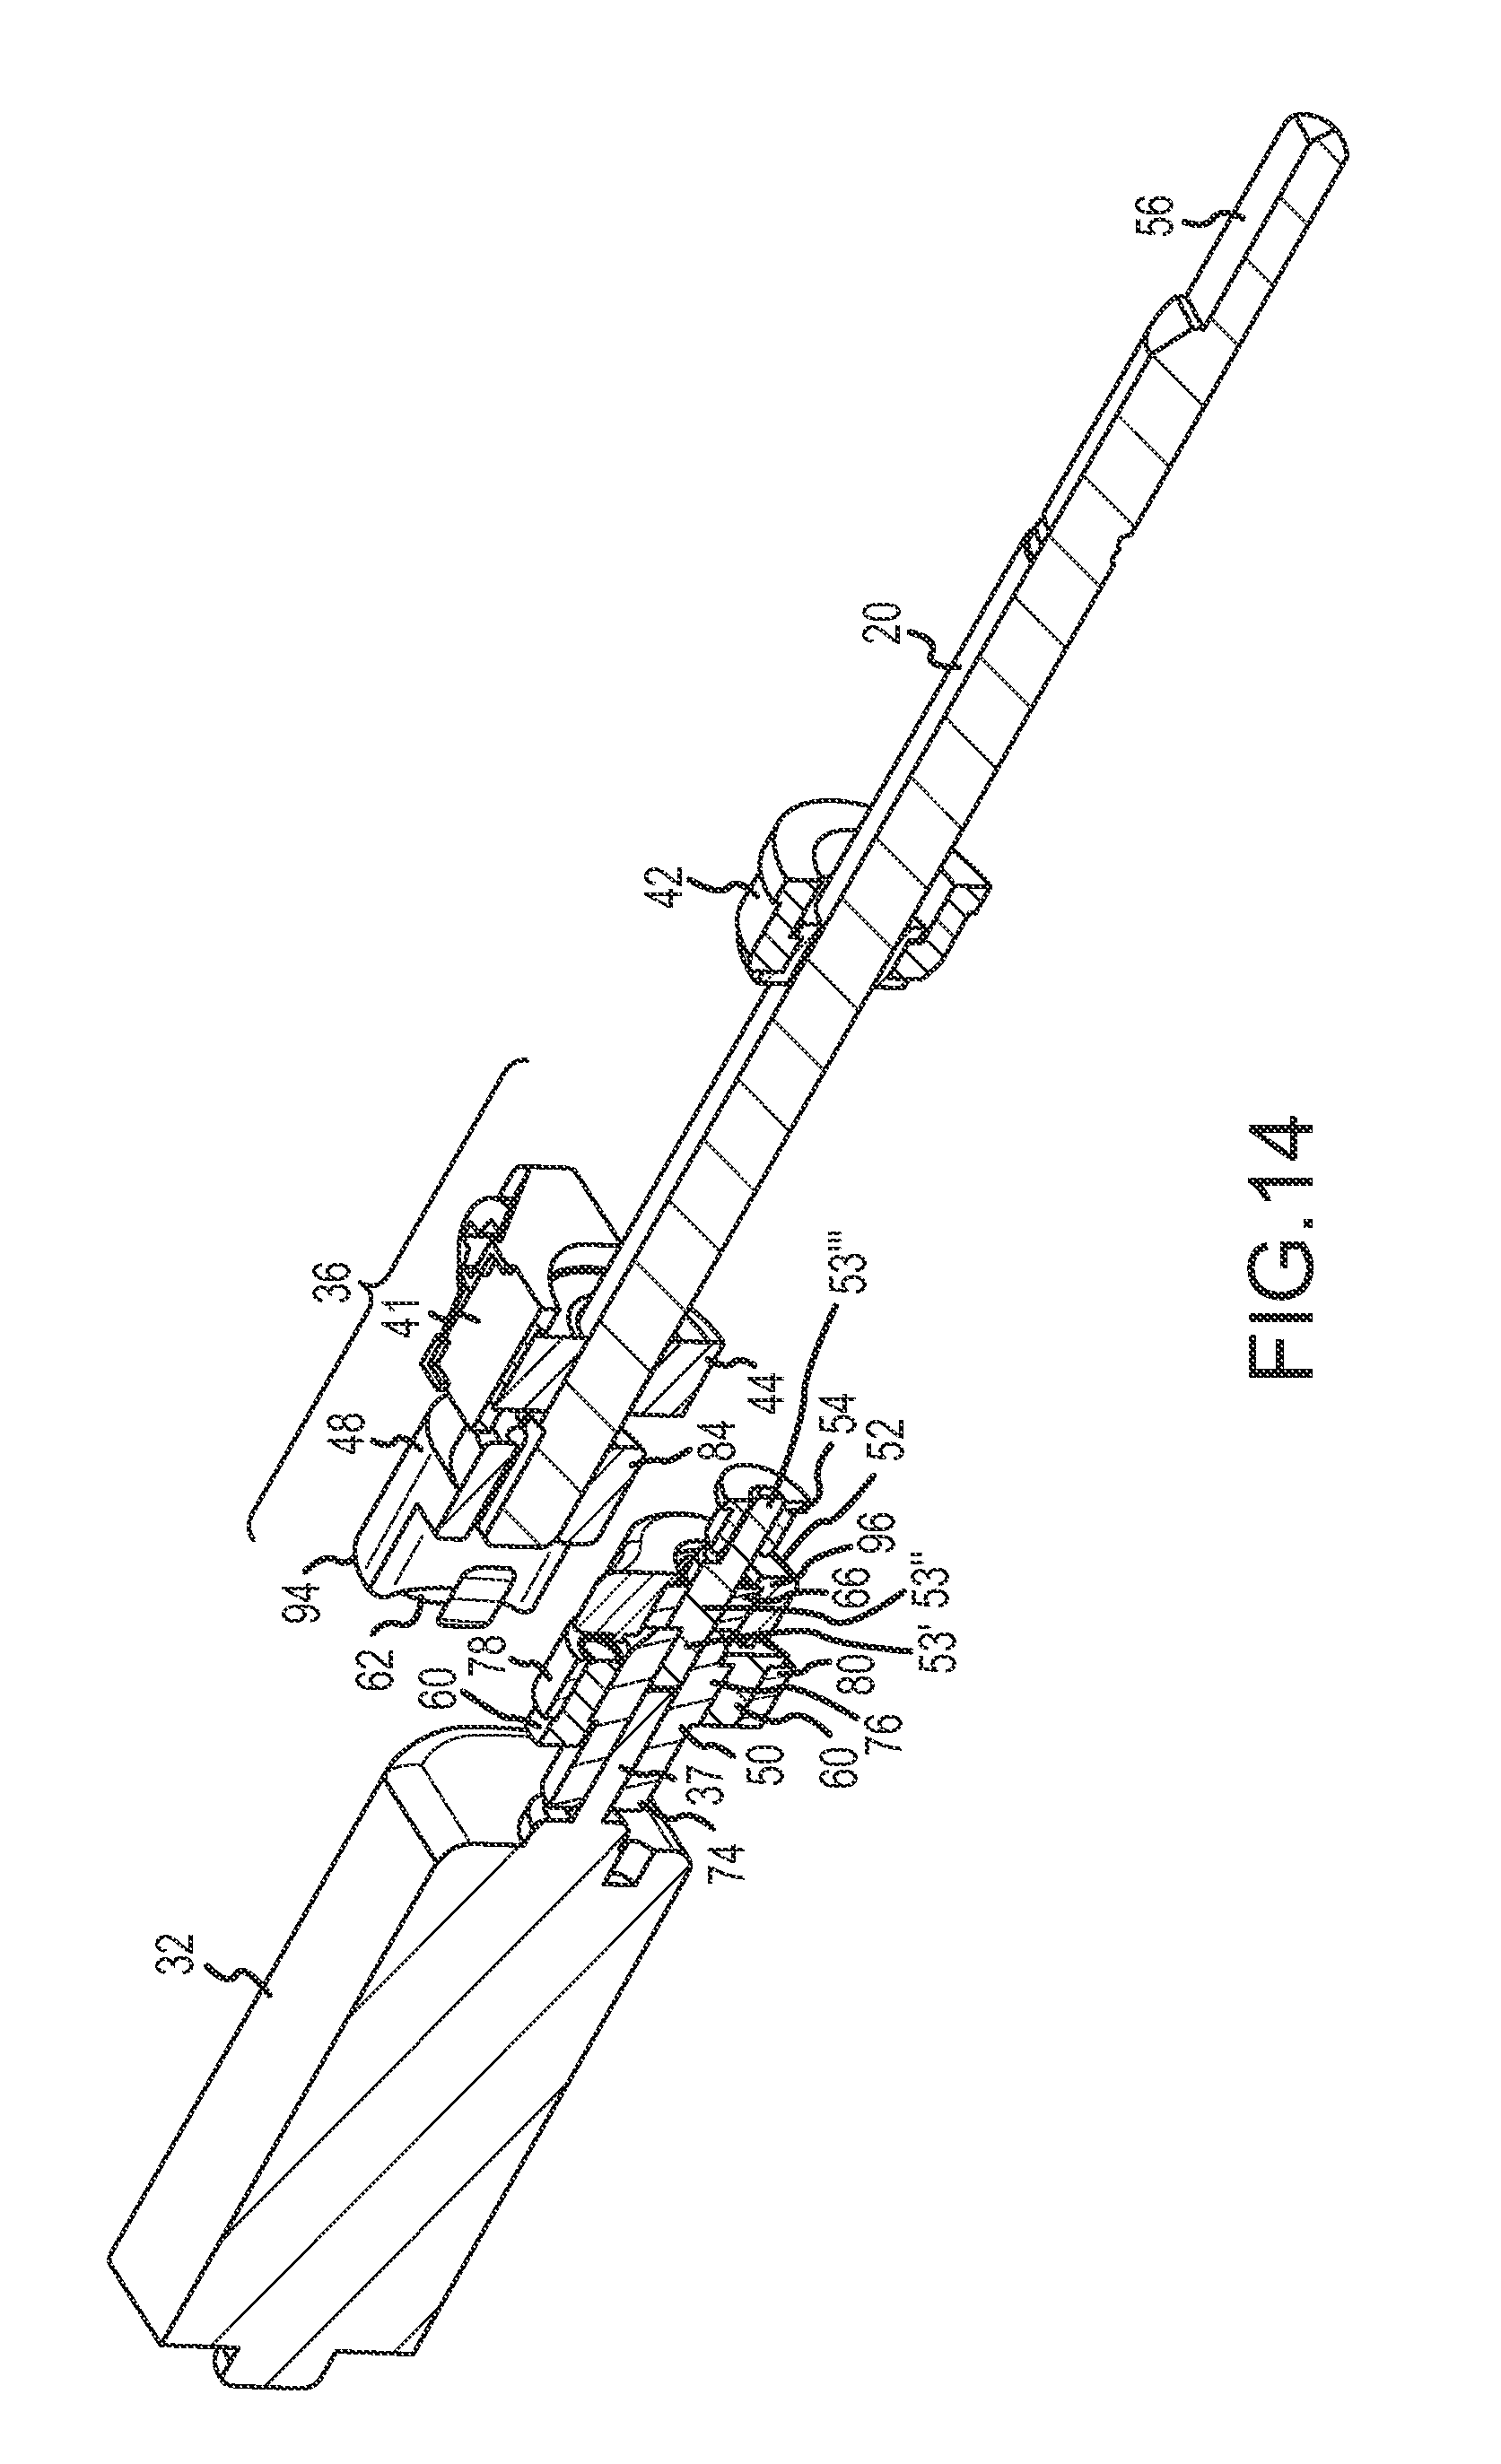 patent us20120279002 mechanically driven sonic toothbrush